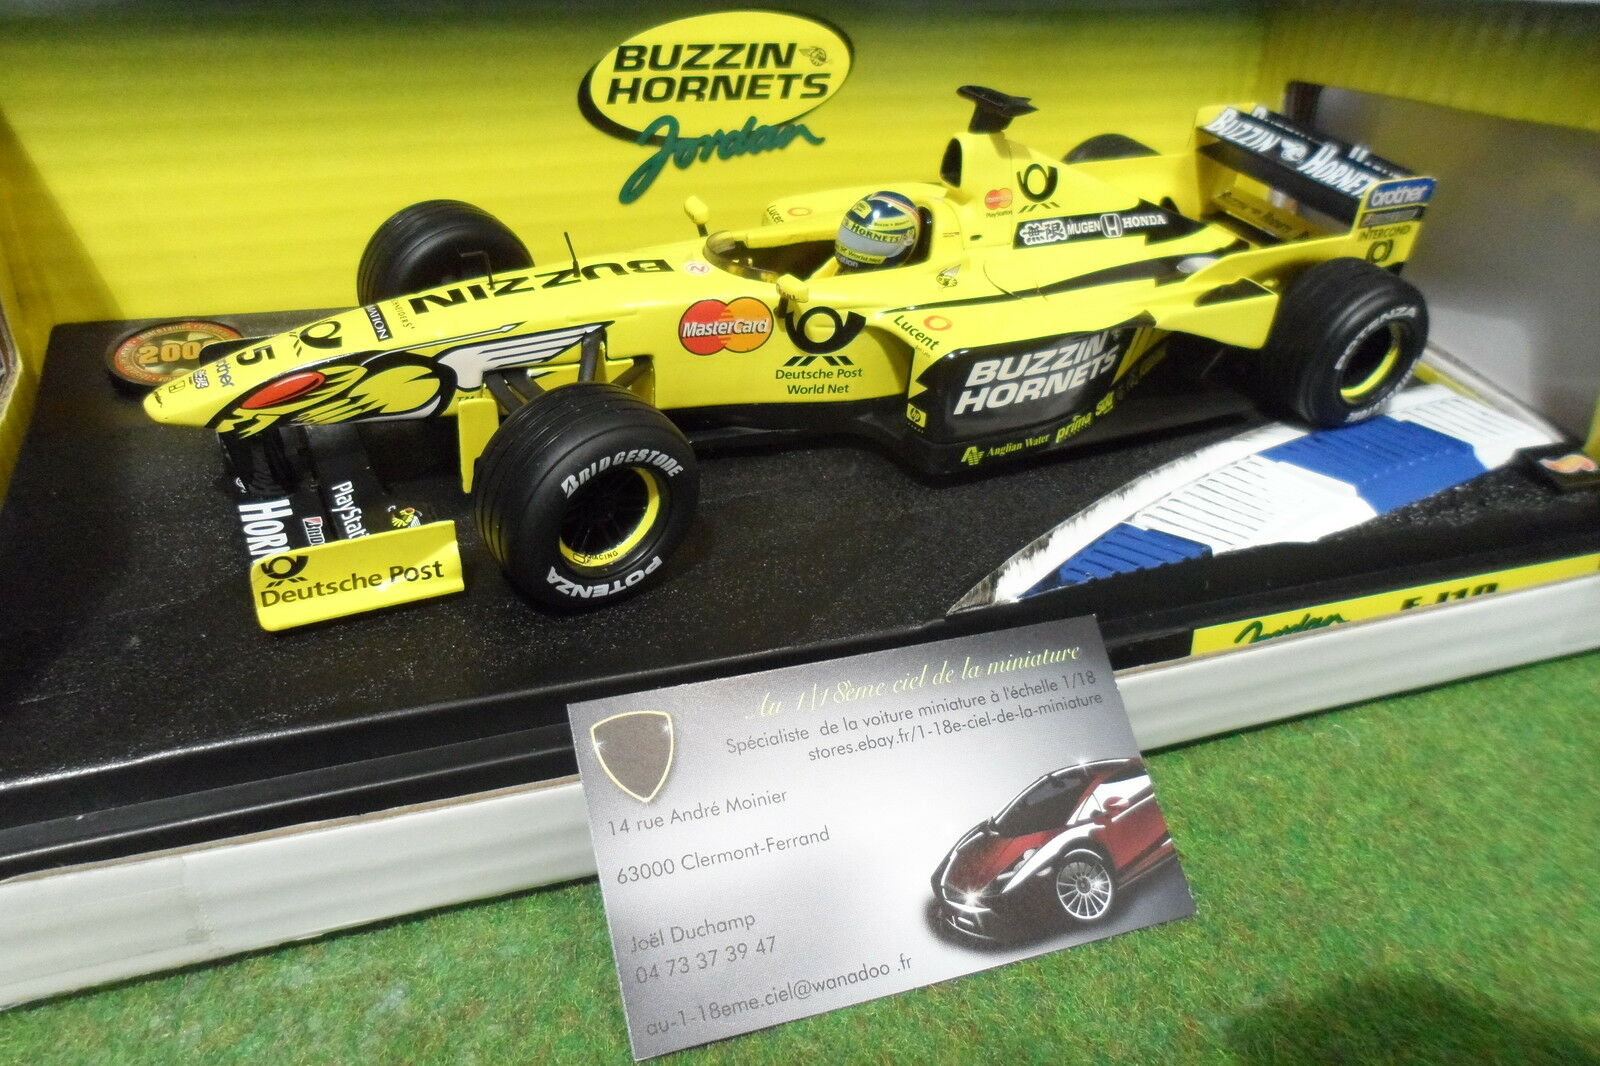 F1 JORDAN HONDA EJ10 FRENTZEN 1 18 HOT WHEELS 26700 formule 1 voiture miniature